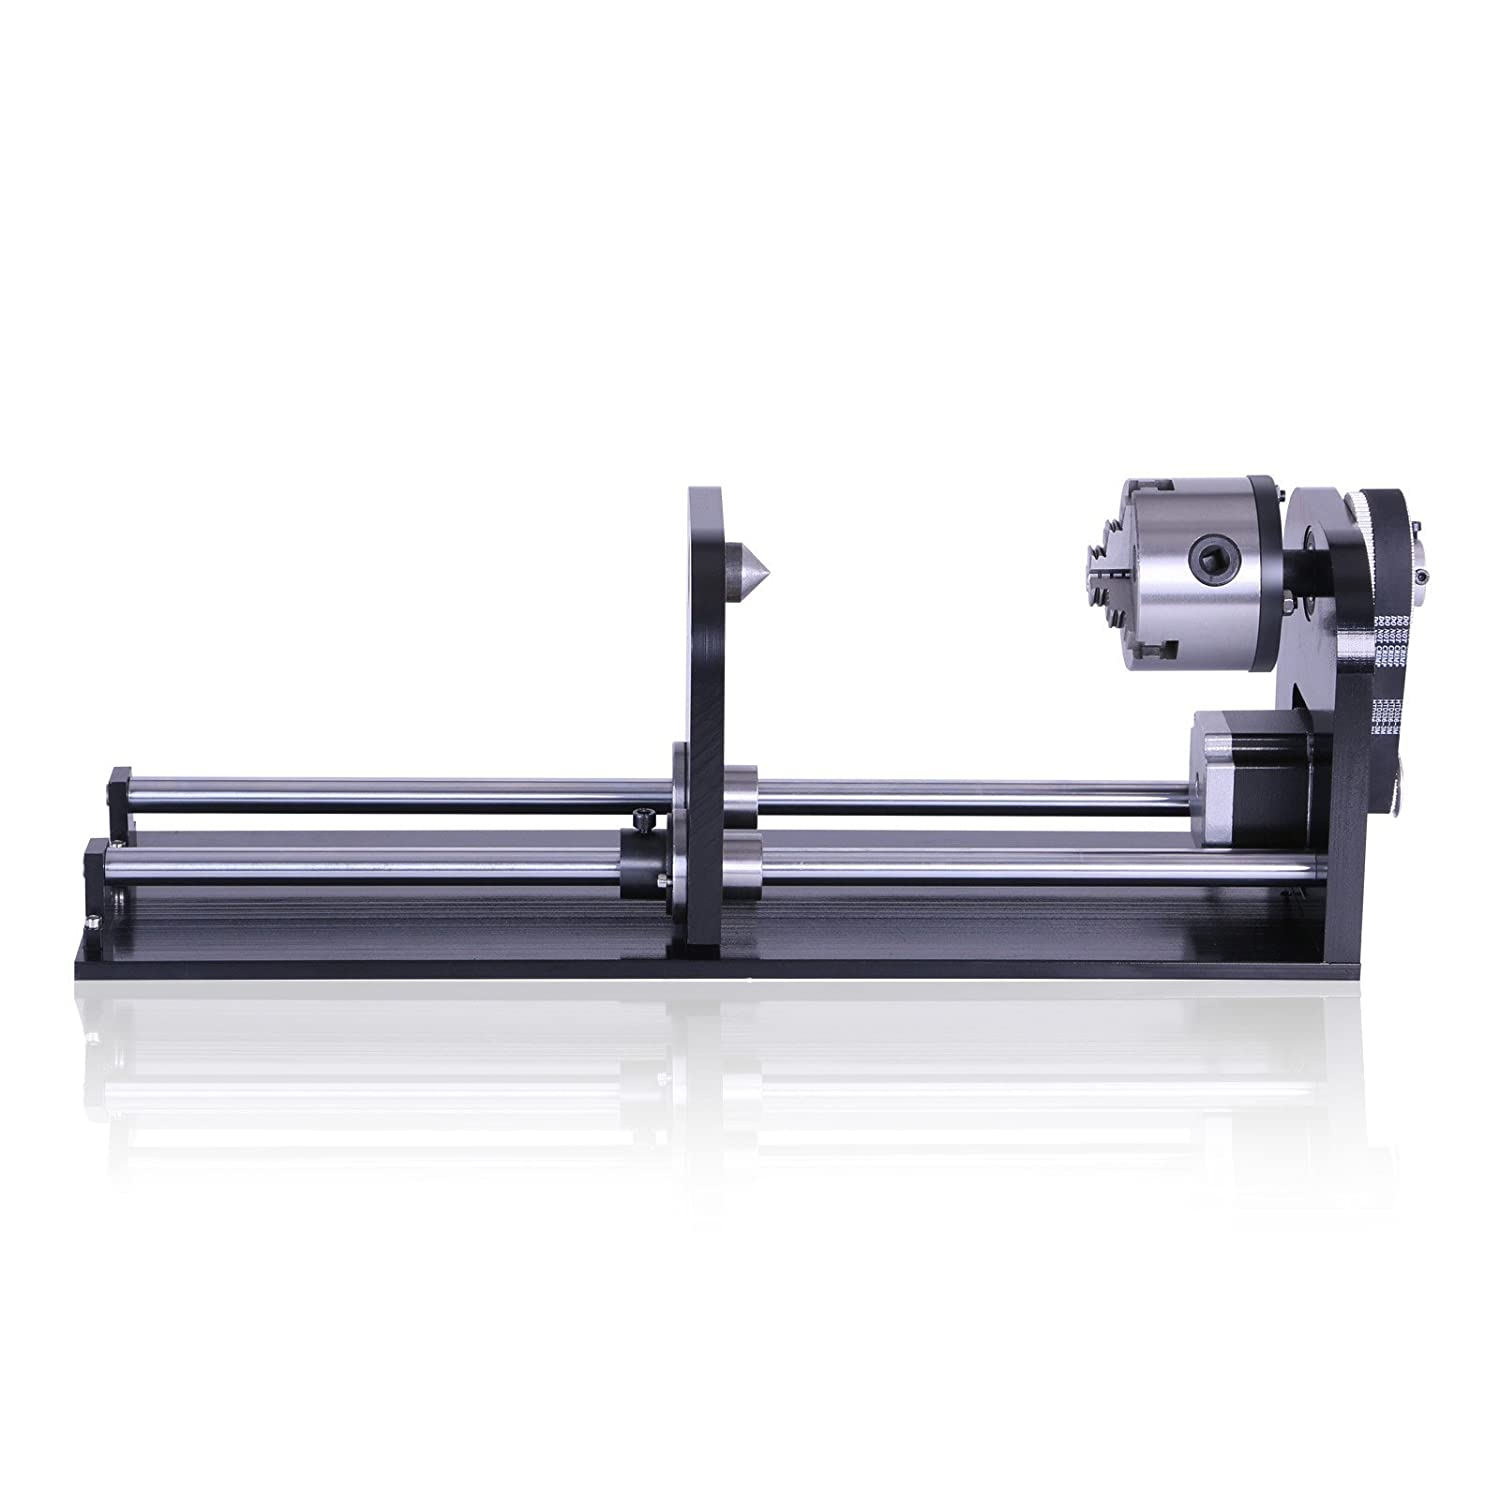 Rotary AXIS CNCShop CNC Router Rotary Axis Rotary Attachment for CO2 Laser Engraving Cutting Machine with 80mm Tailstock A-Axis Rotational Newest Design